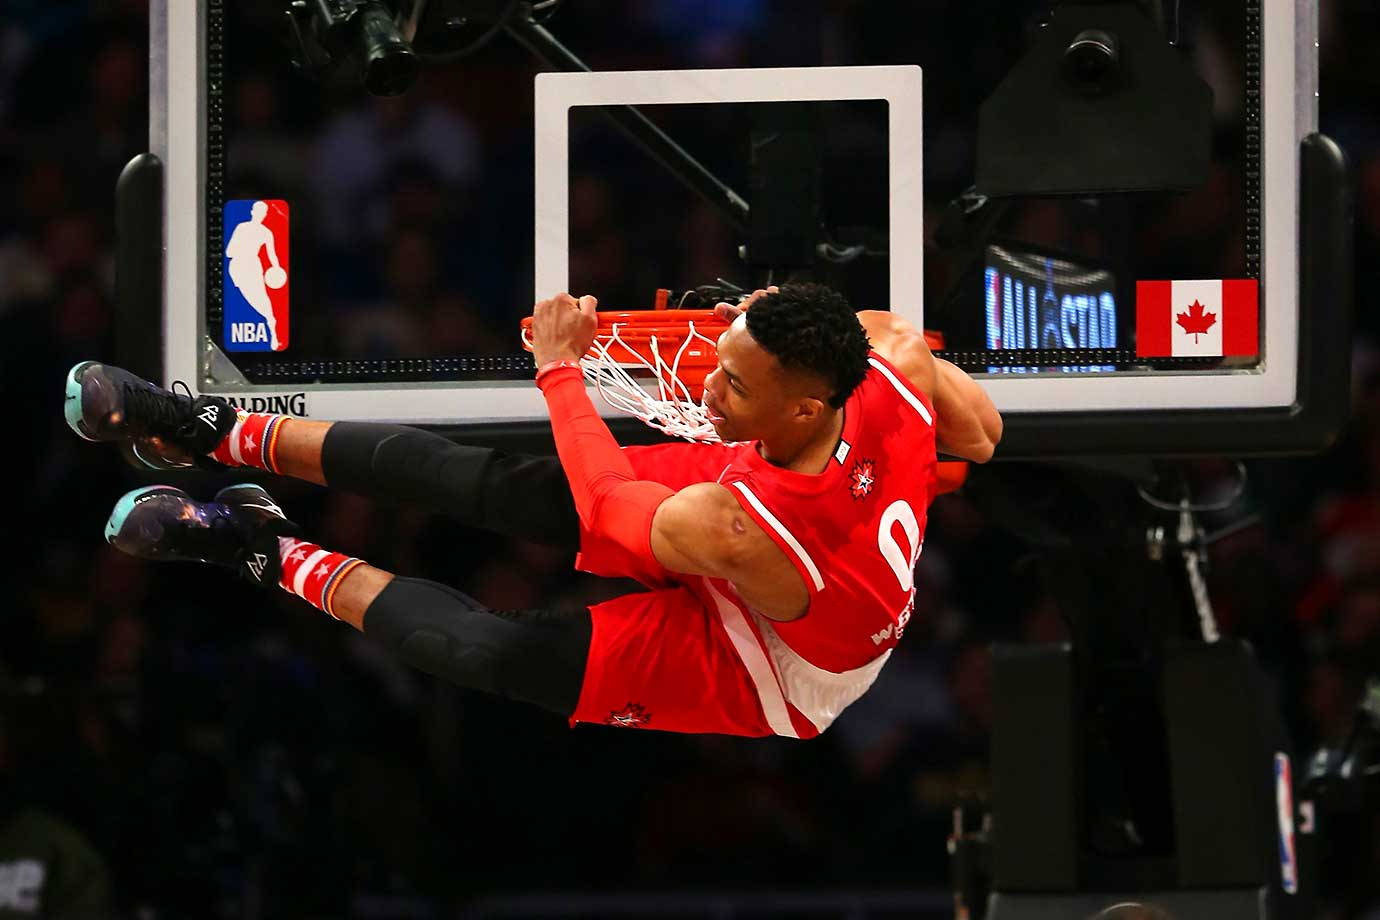 Russell Westbrook dunks on a night in which he would be named All-Star Game MVP.